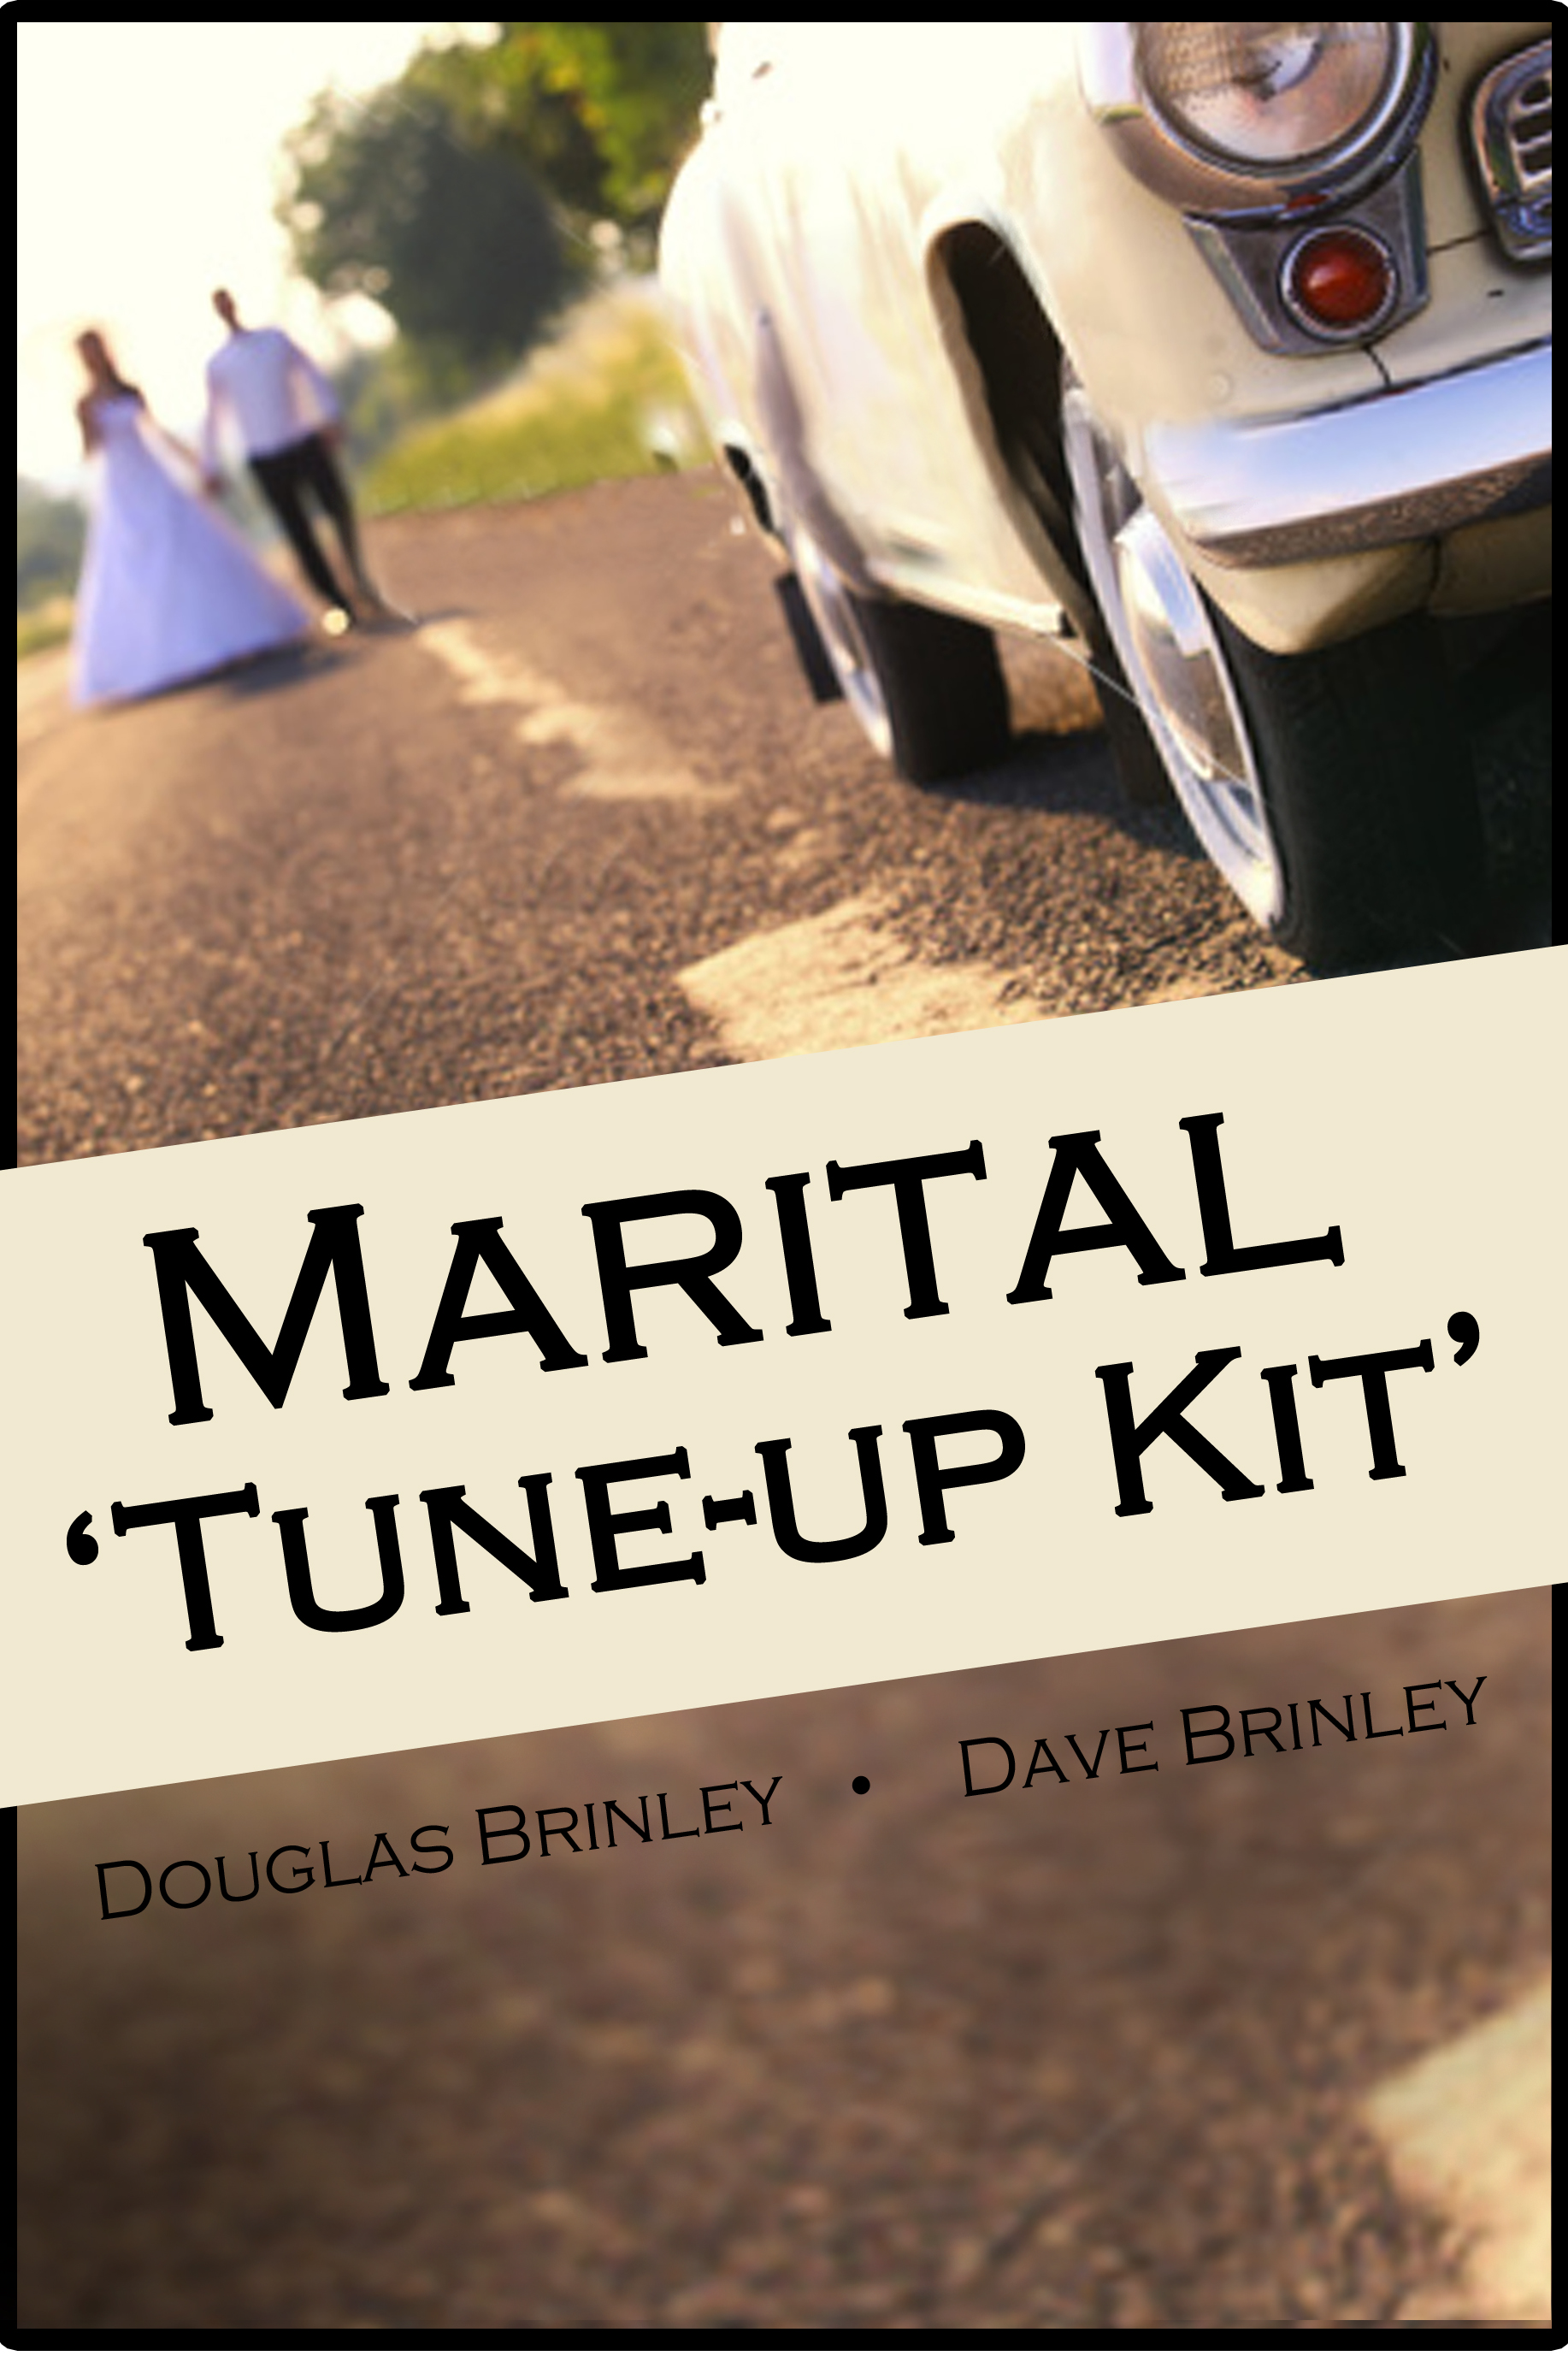 (New) Marital Tune-up Kit (Brinley)